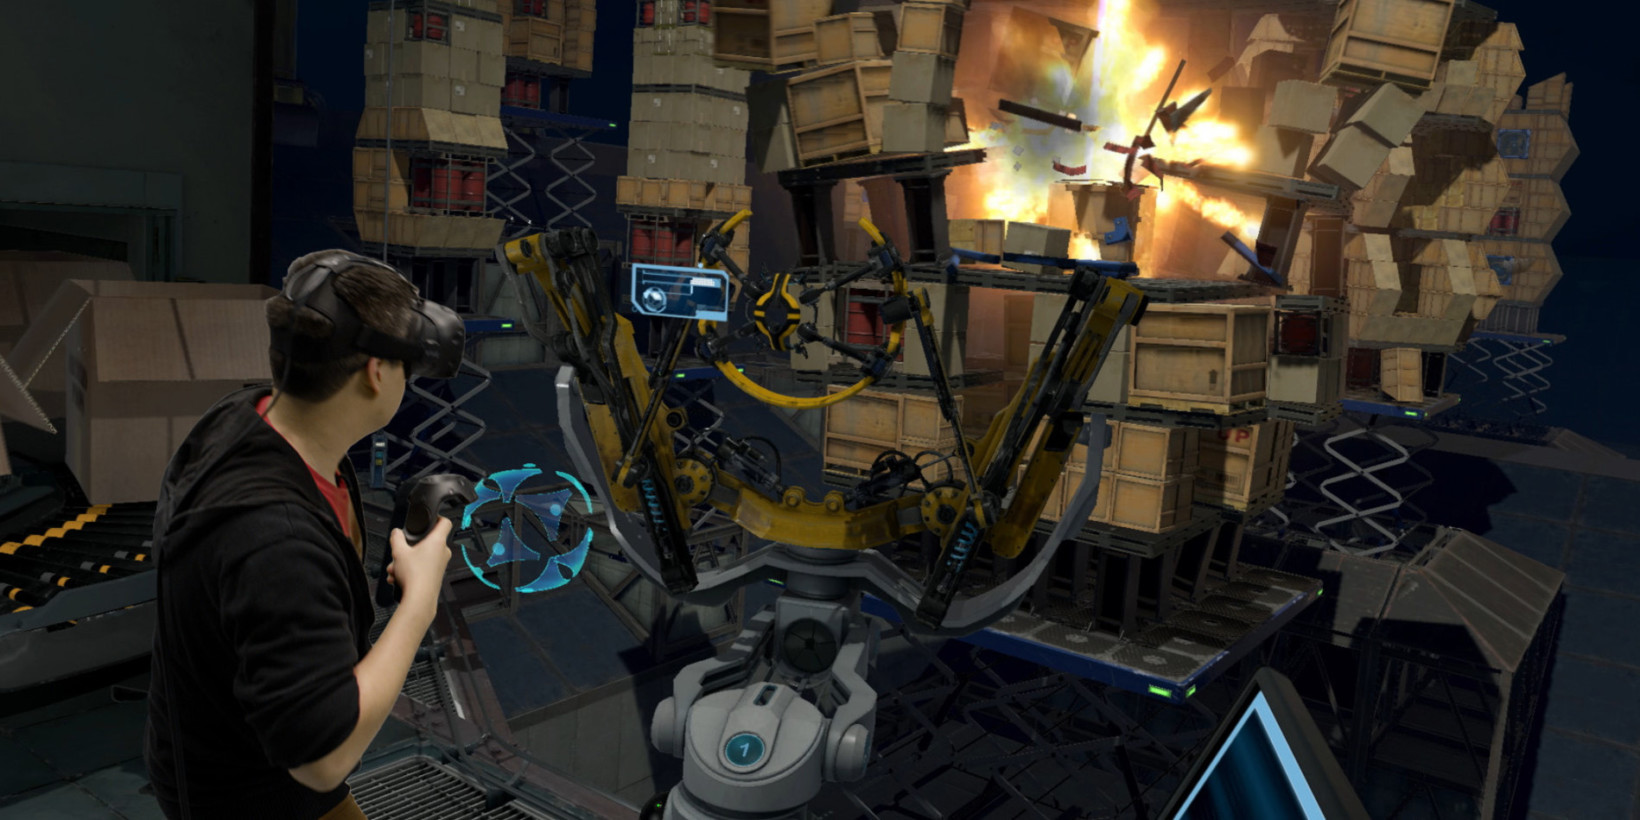 Half Life Developer Valve Is Making 3 Full Length VR Games